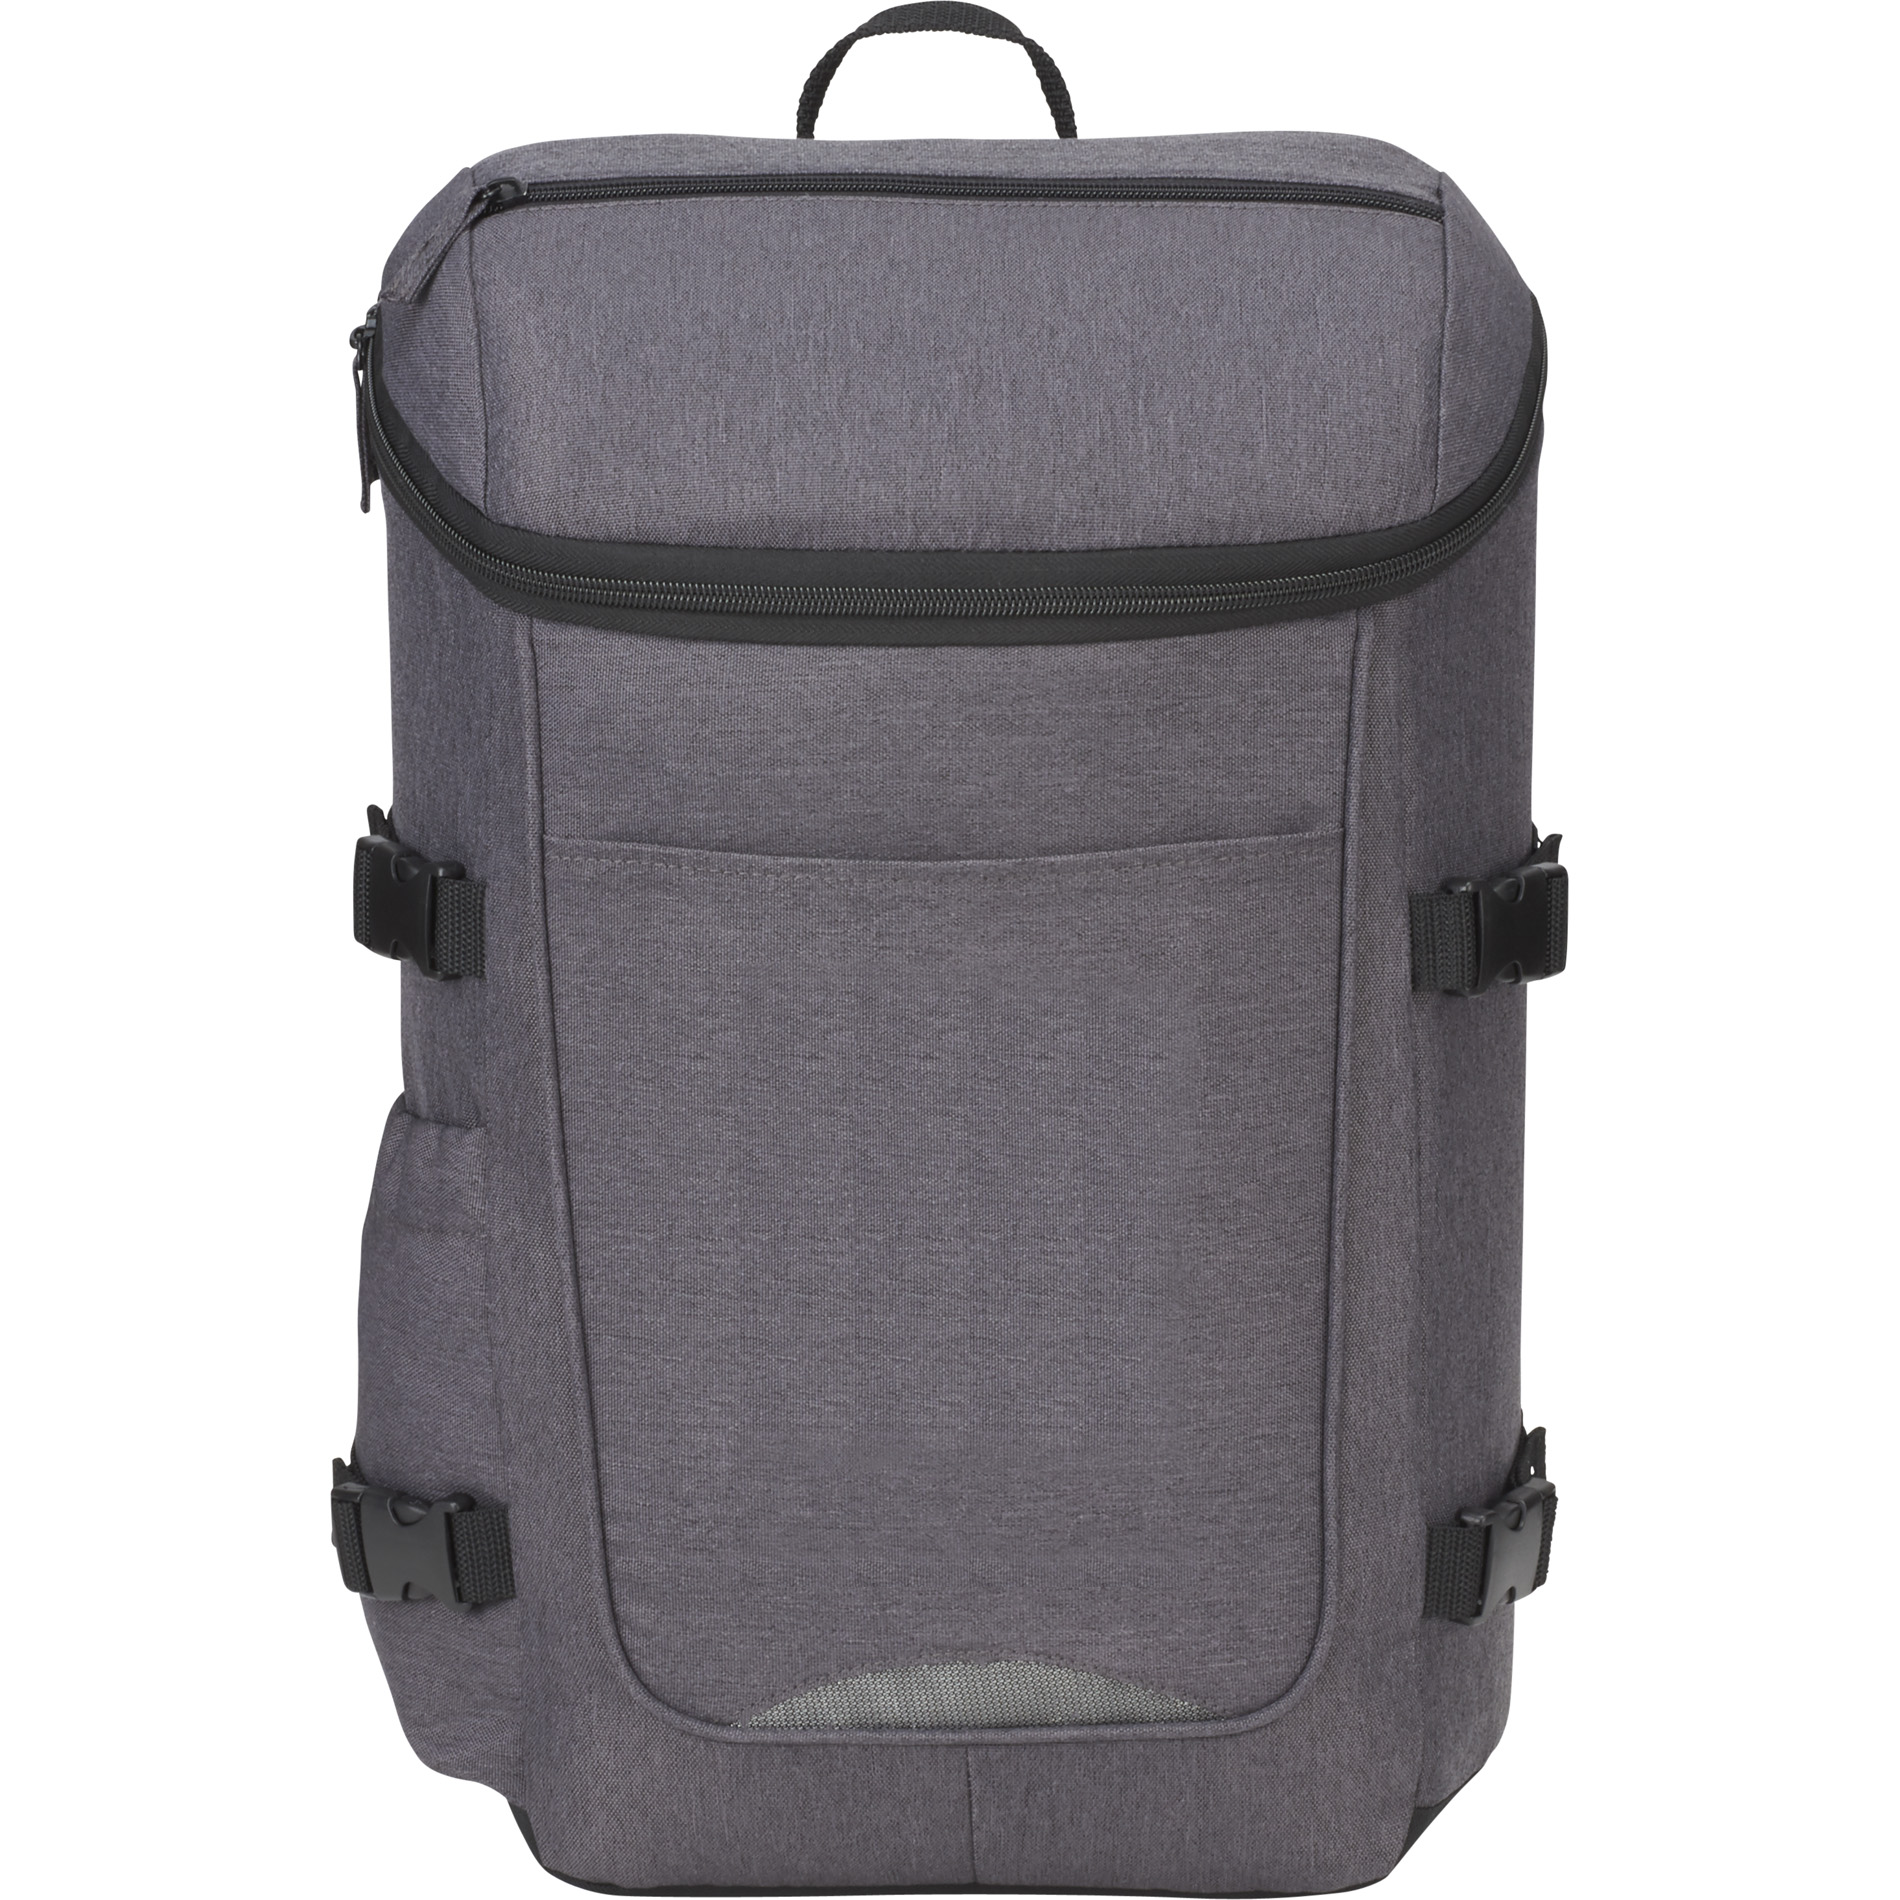 "LEEDS 5790-06 - Hayes 15"" Computer Backpack"